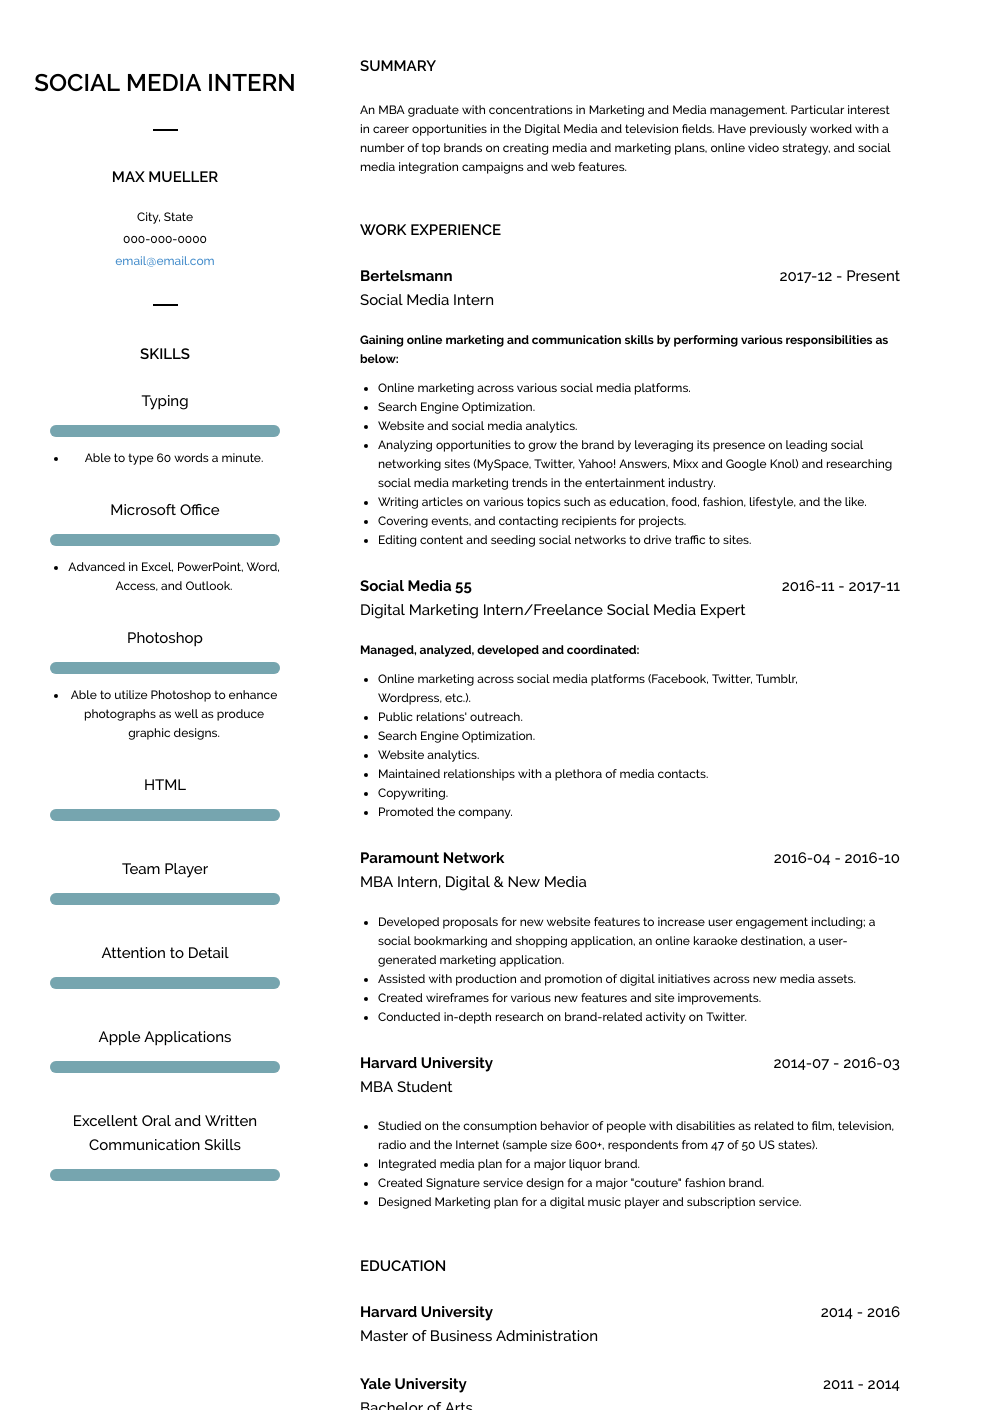 Social Media Intern Resume Sample